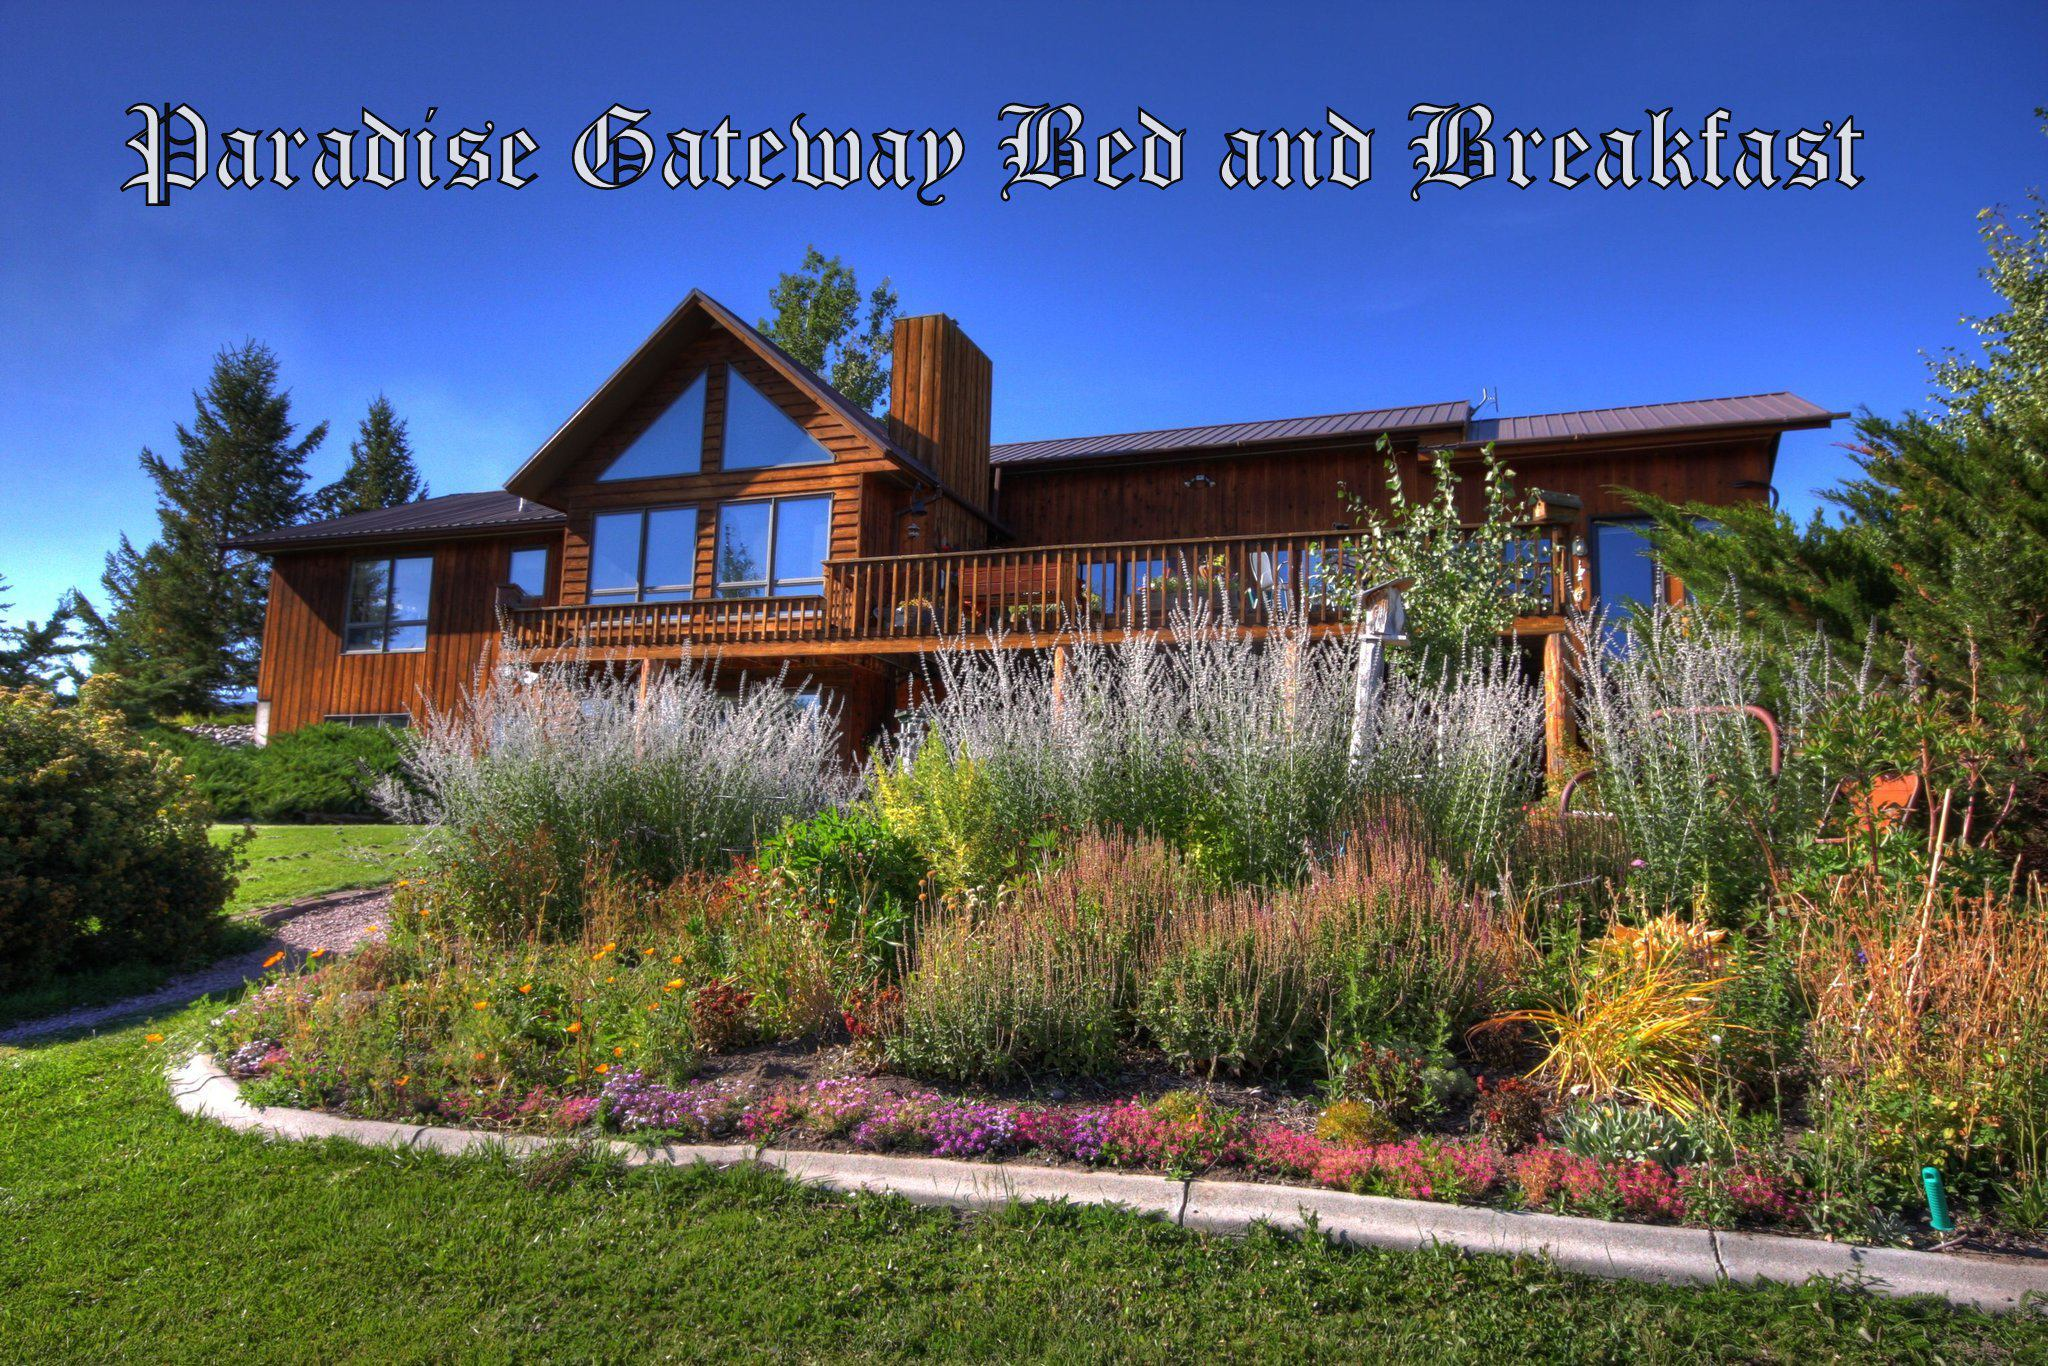 Paradise Gateway Bed and Breakfast in Emigrant, Montana